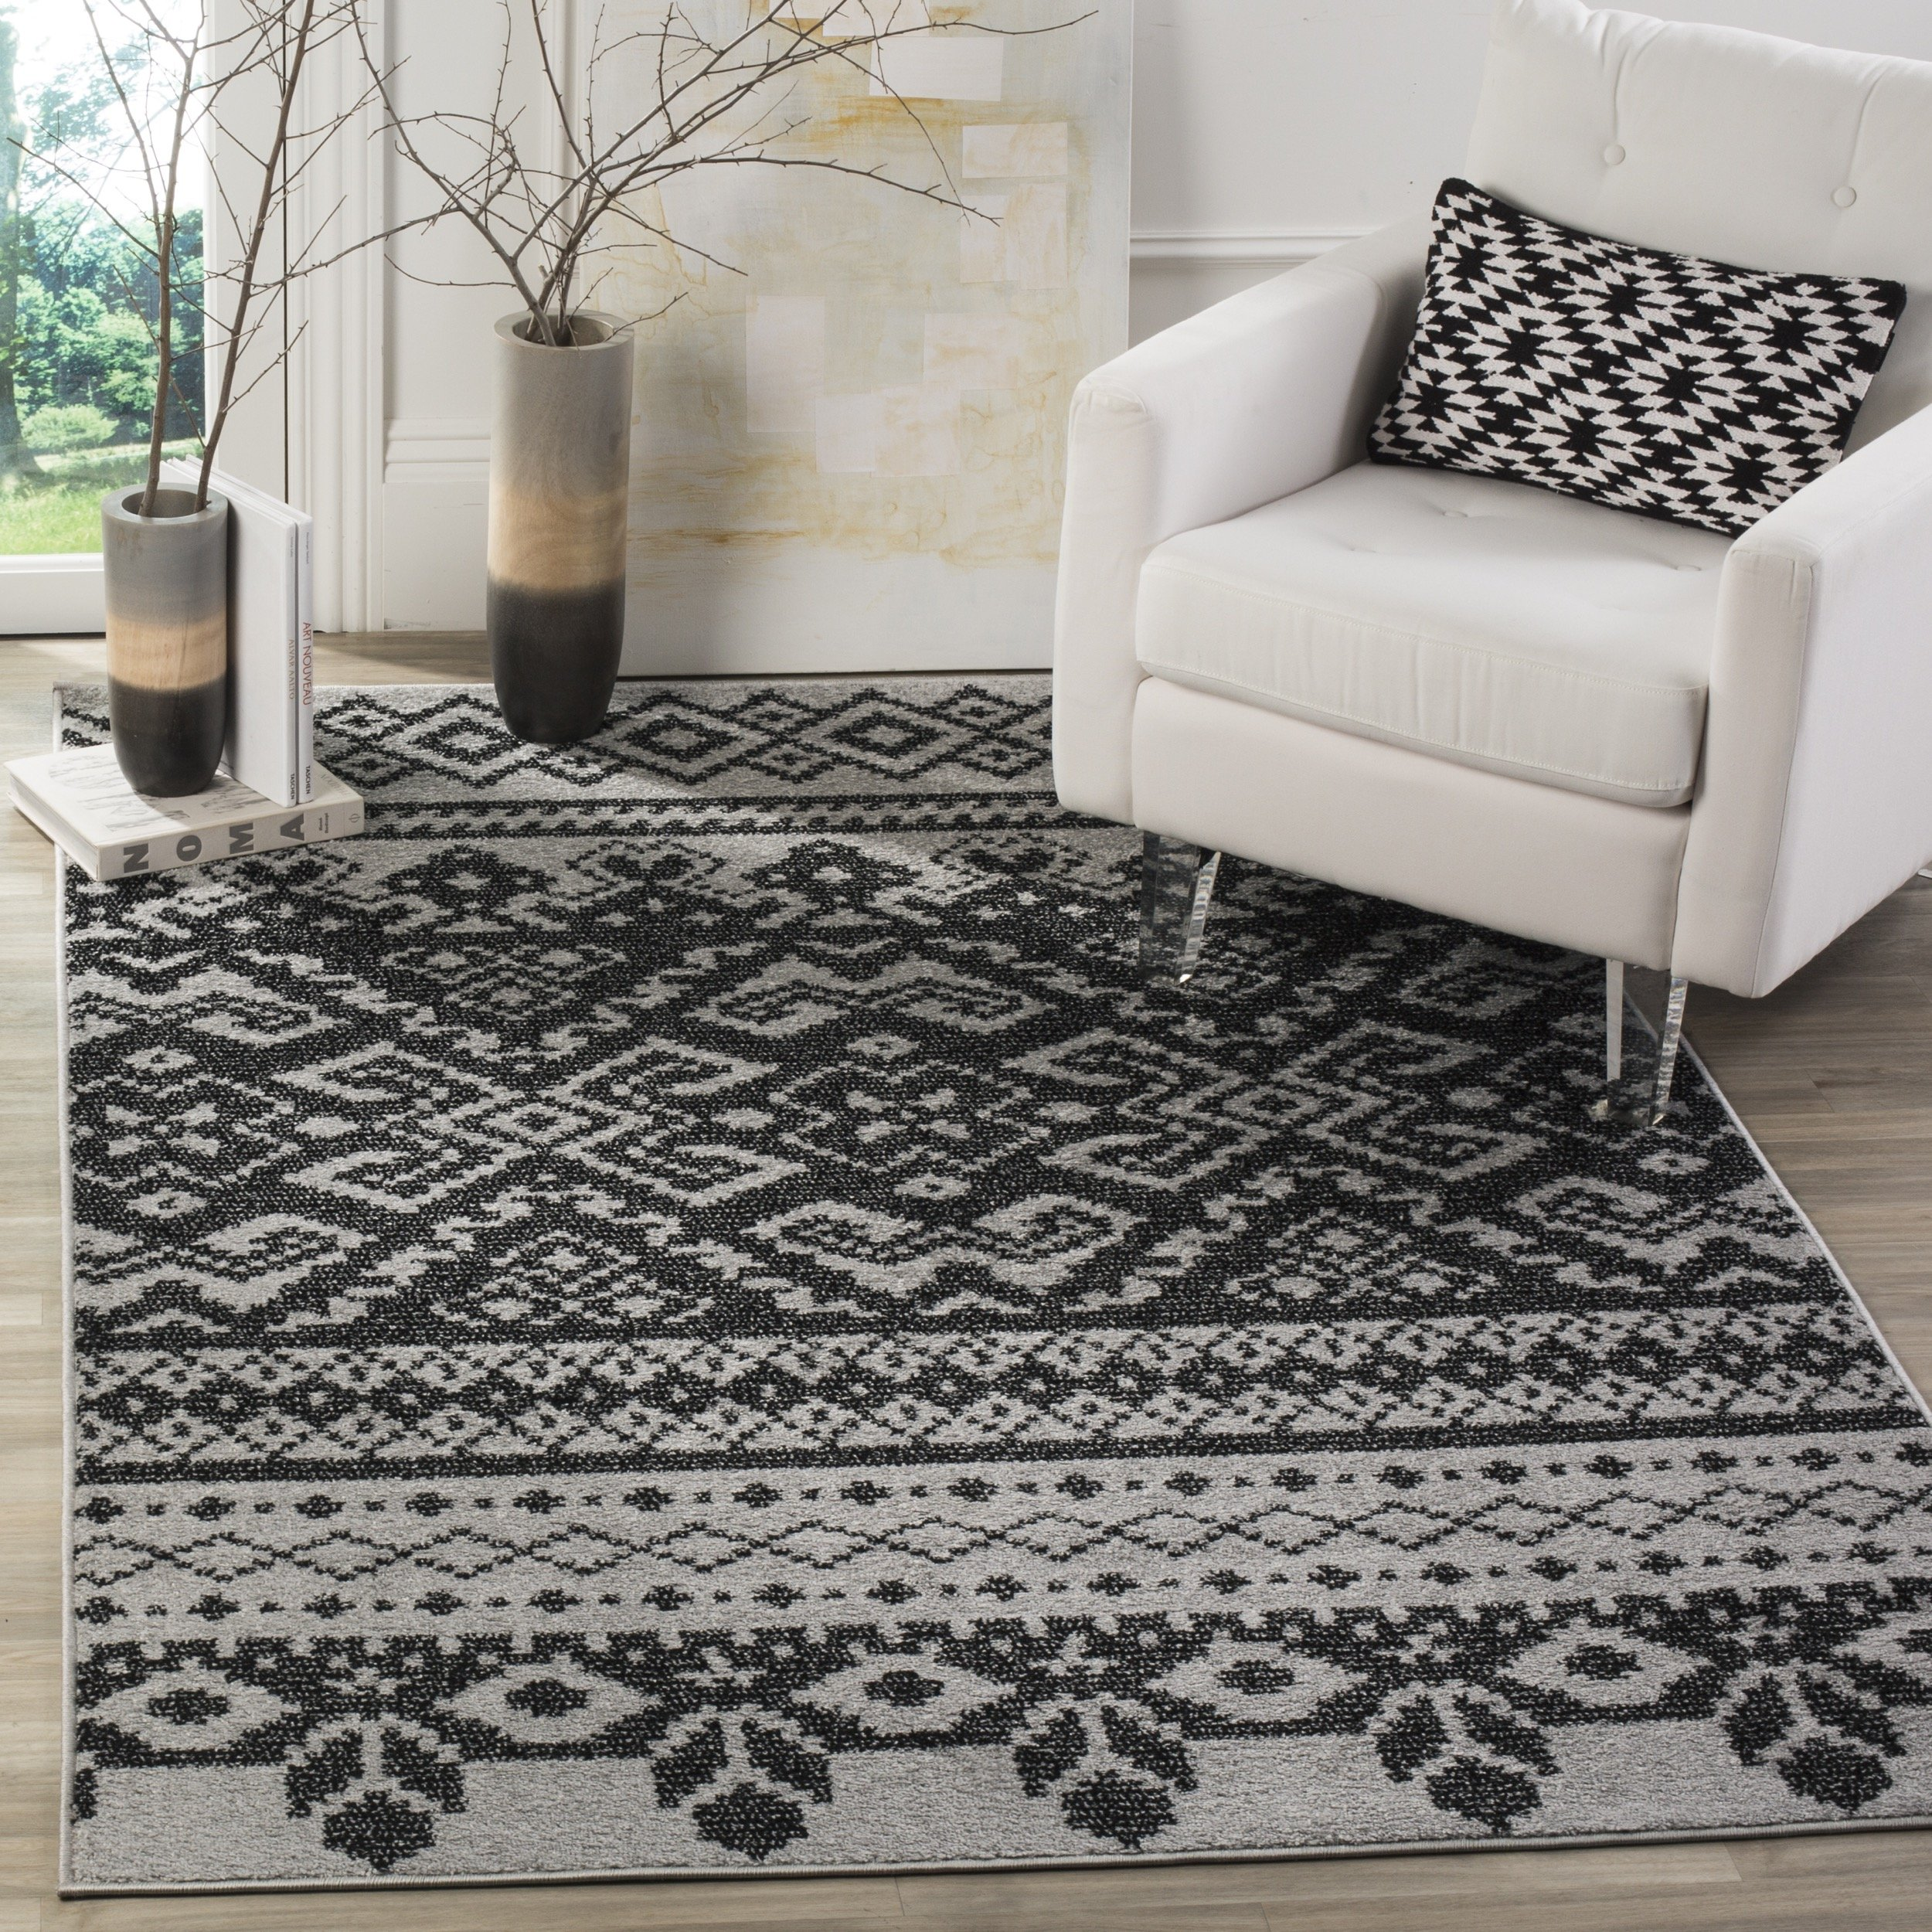 Safavieh Adirondack Collection ADR107A Silver and Black Rustic Bohemian Area Rug (6' x 9')